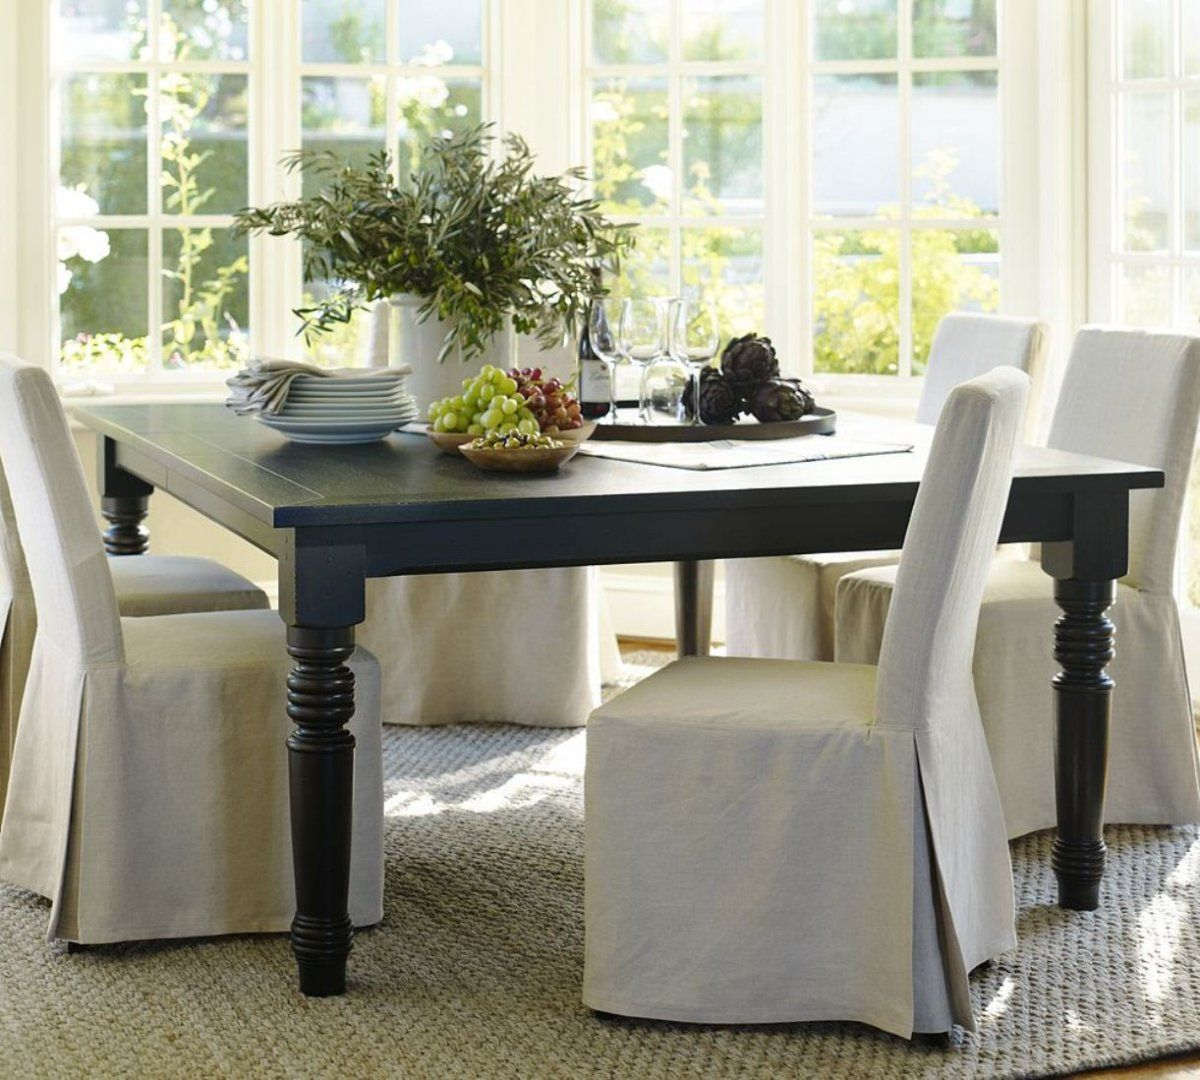 Remarkable Country Style Pottery Barn Dining Room Design With Dark Grey Pdpeps Interior Chair Design Pdpepsorg